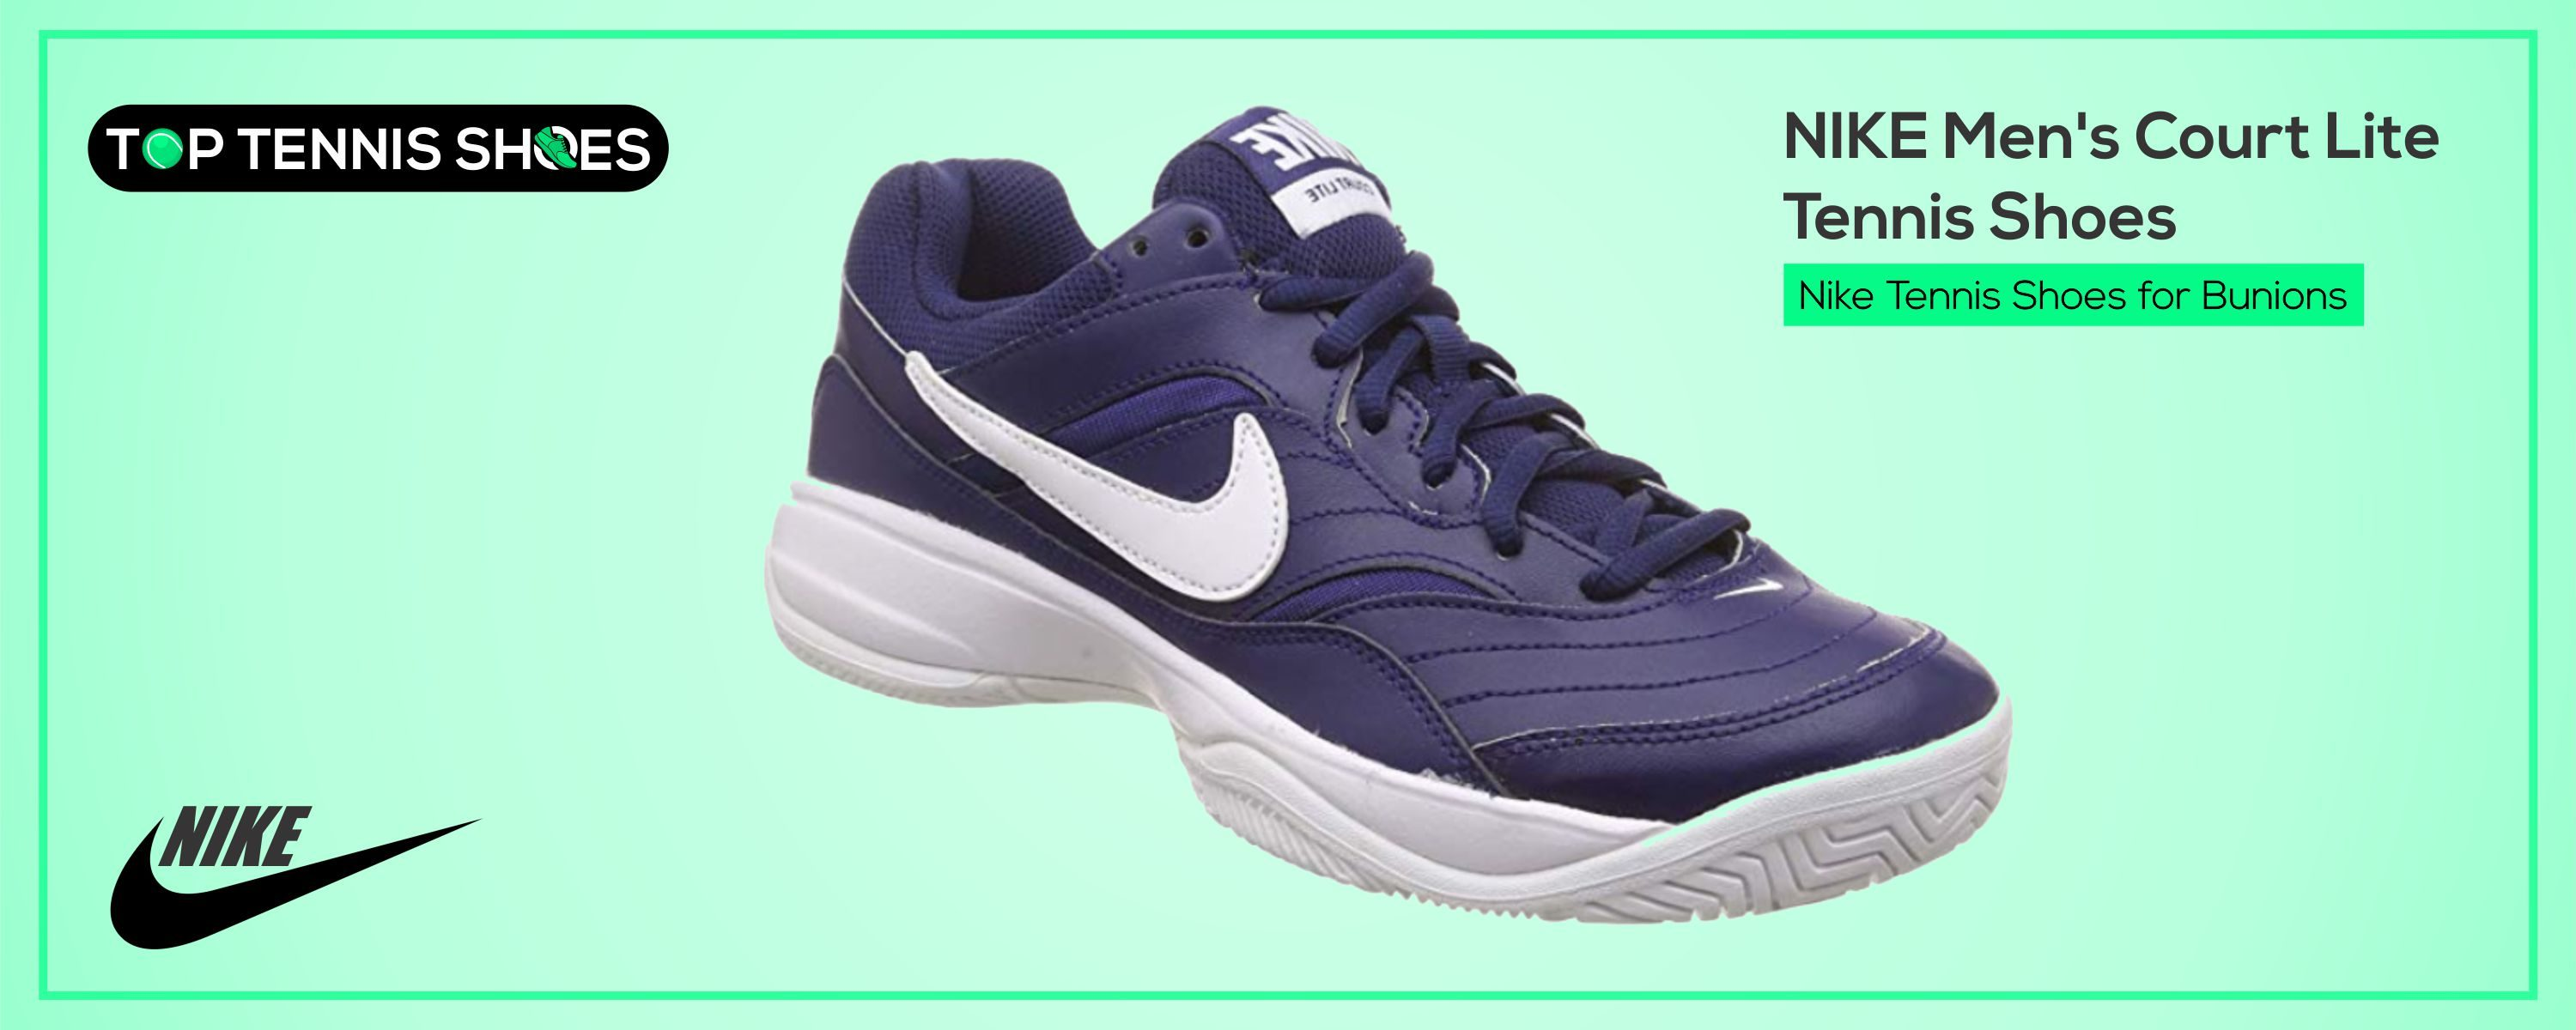 Nike Tennis Shoes for Bunions